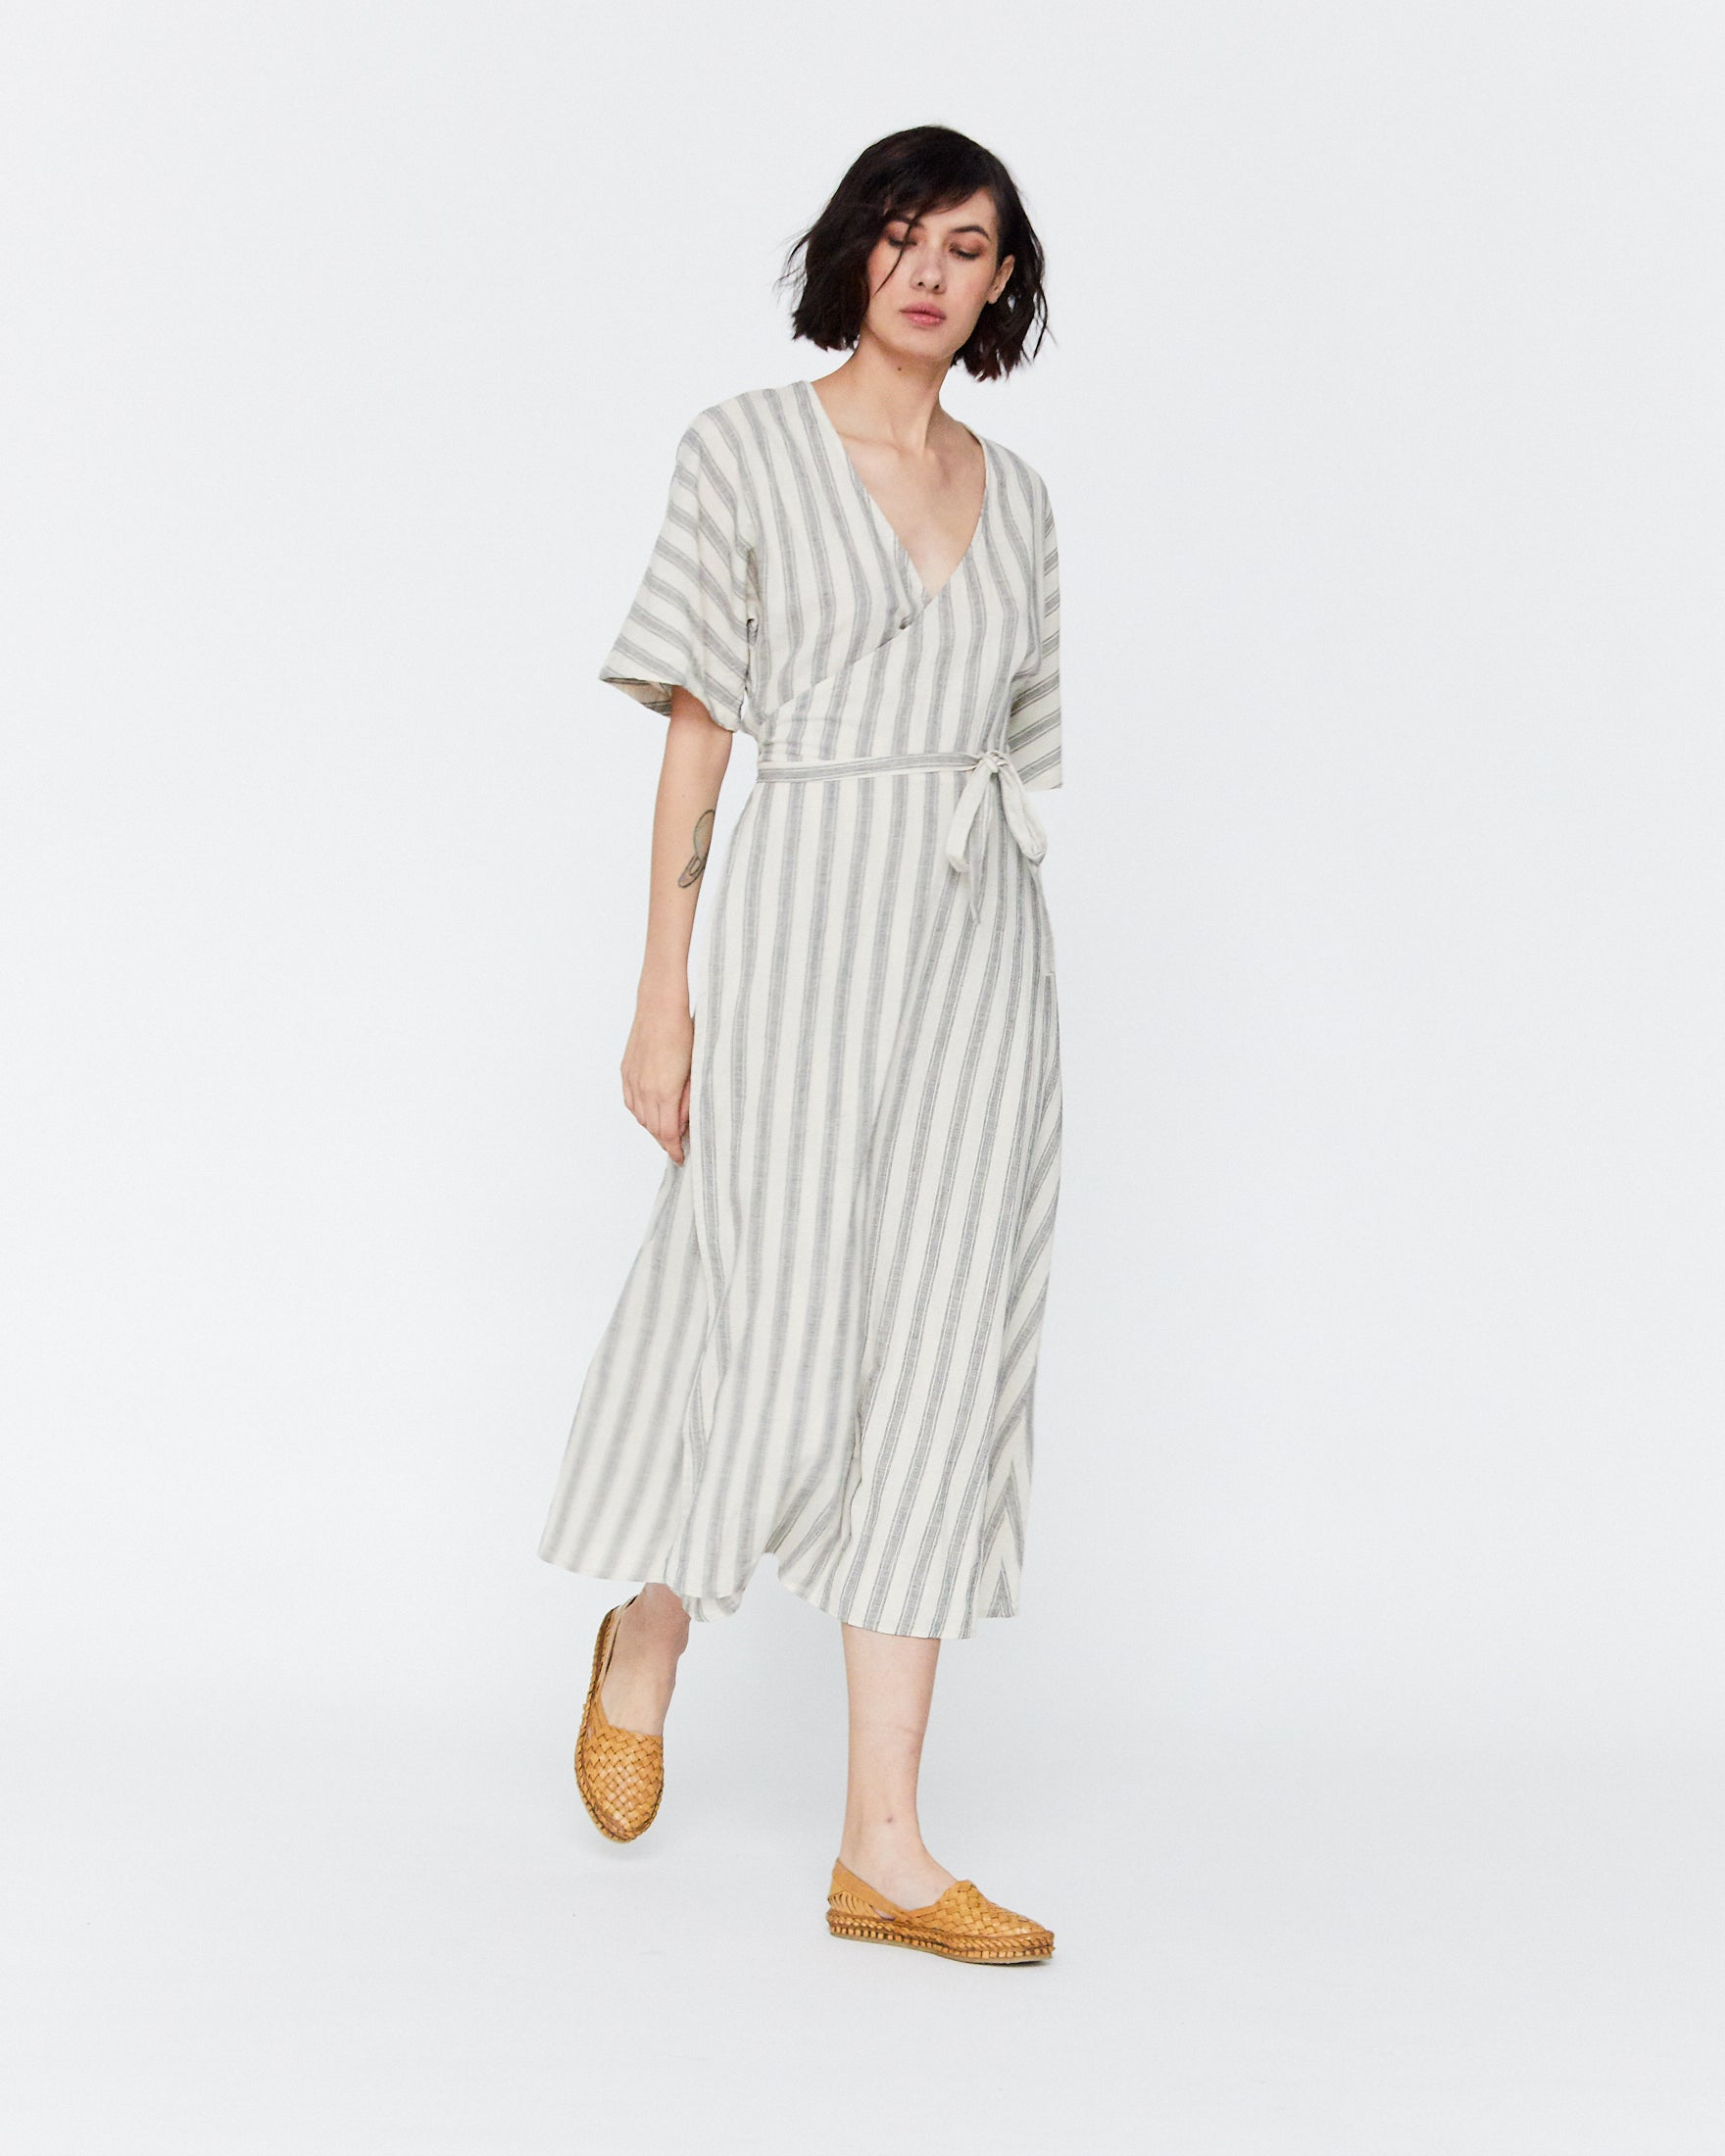 MONET WRAP DRESS - HIGHWAY STRIPE